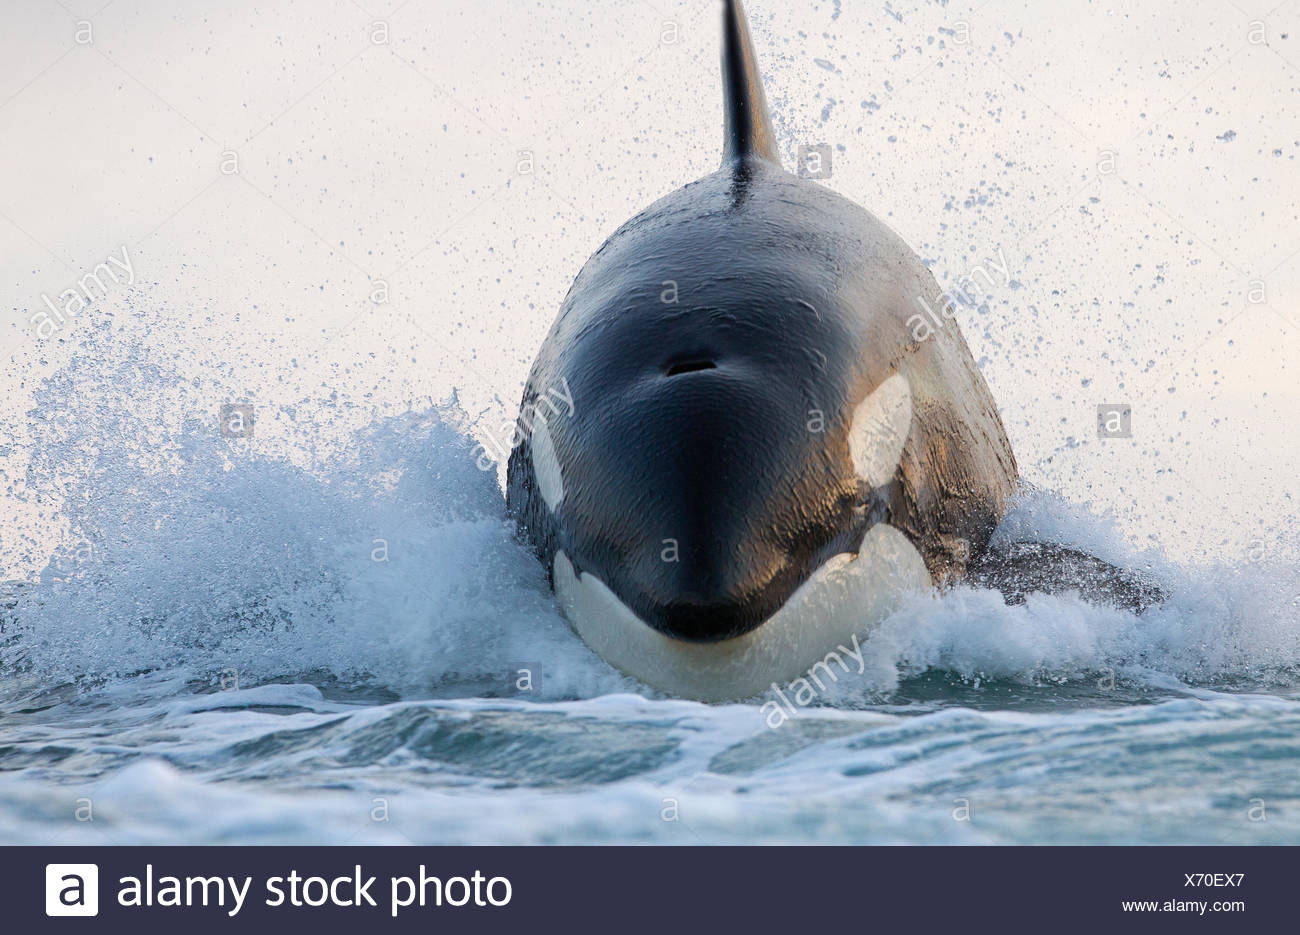 Orca (Orcinus orca) breaching, False Bay, South Africa - Stock Image